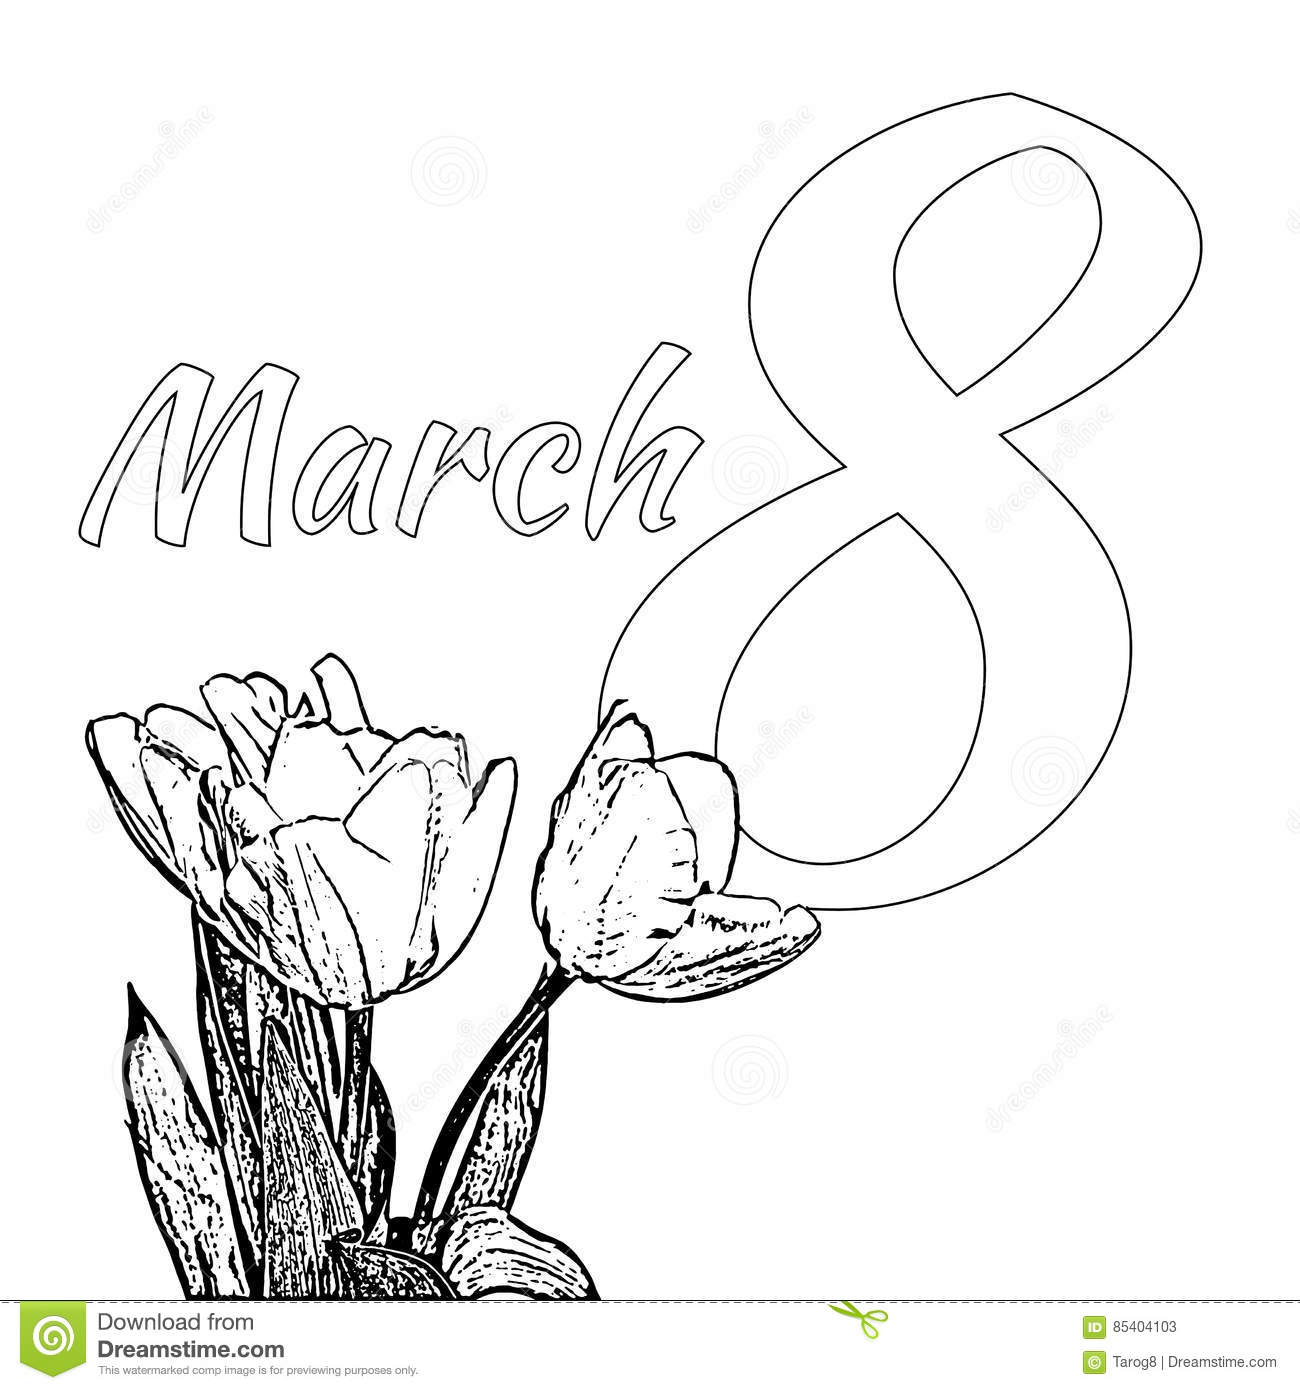 international womens day coloring pages 15 free printable international womens day coloring pages womens day pages international coloring